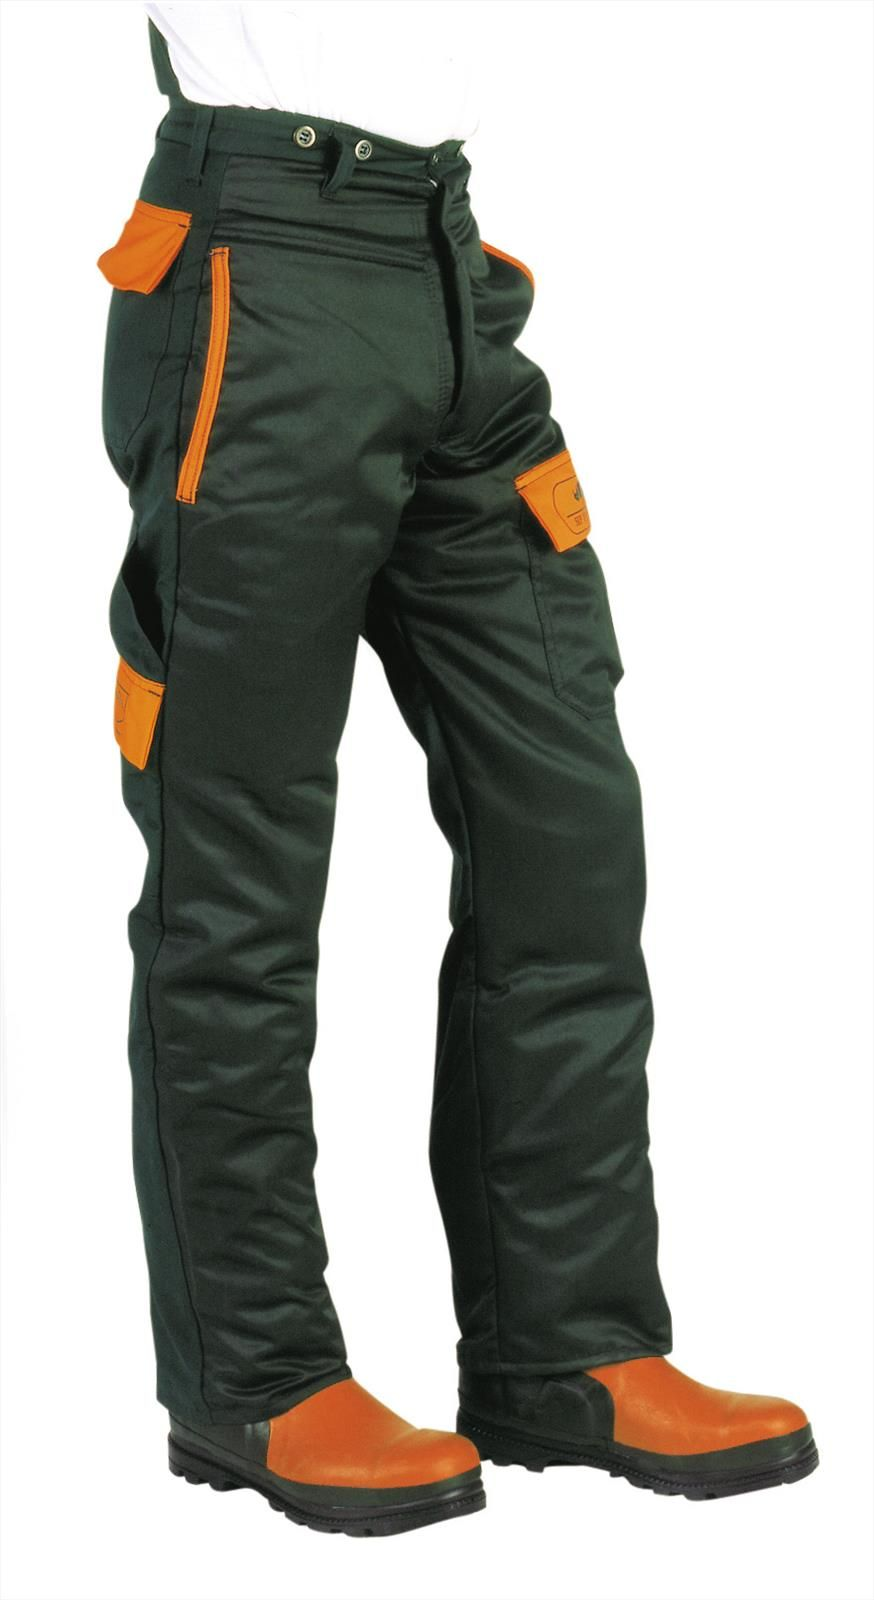 Boxer chainsaw trousers mens work pants mens tactical